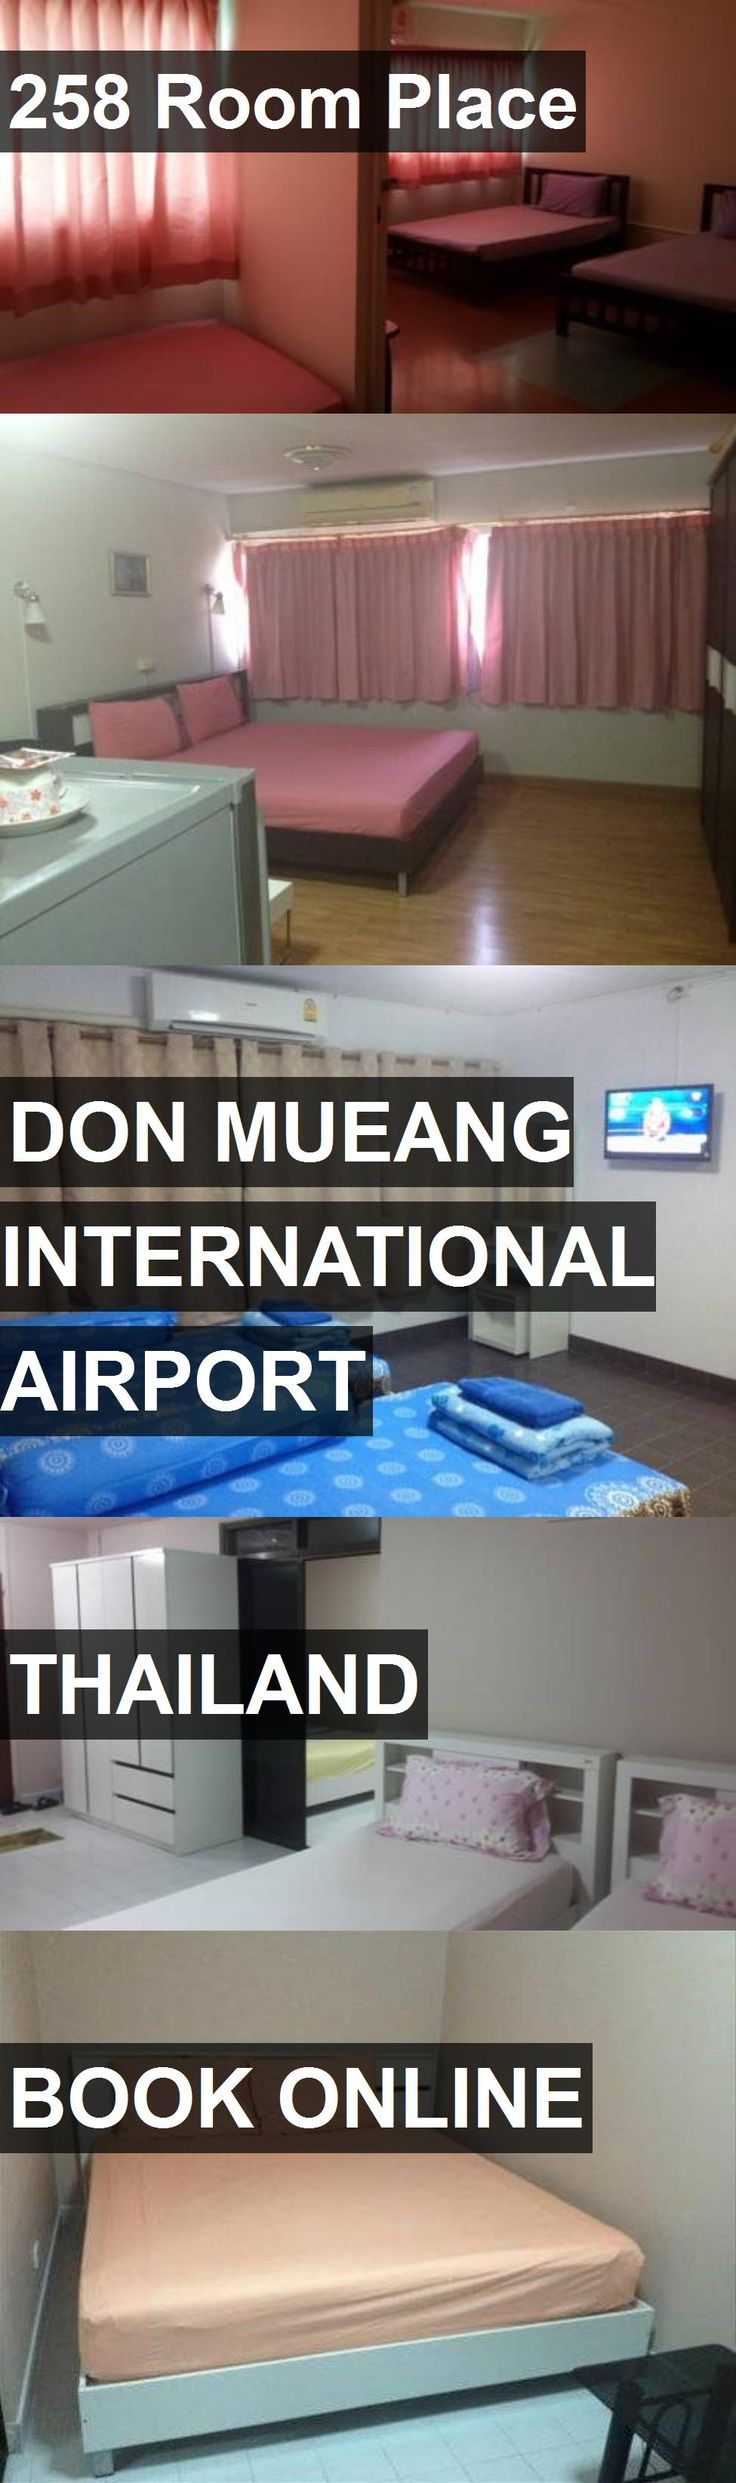 Hotel 258 Room Place in Don Mueang International Airport, Thailand. For more information, photos, reviews and best prices please follow the link. #Thailand #DonMueangInternationalAirport #258RoomPlace #hotel #travel #vacation